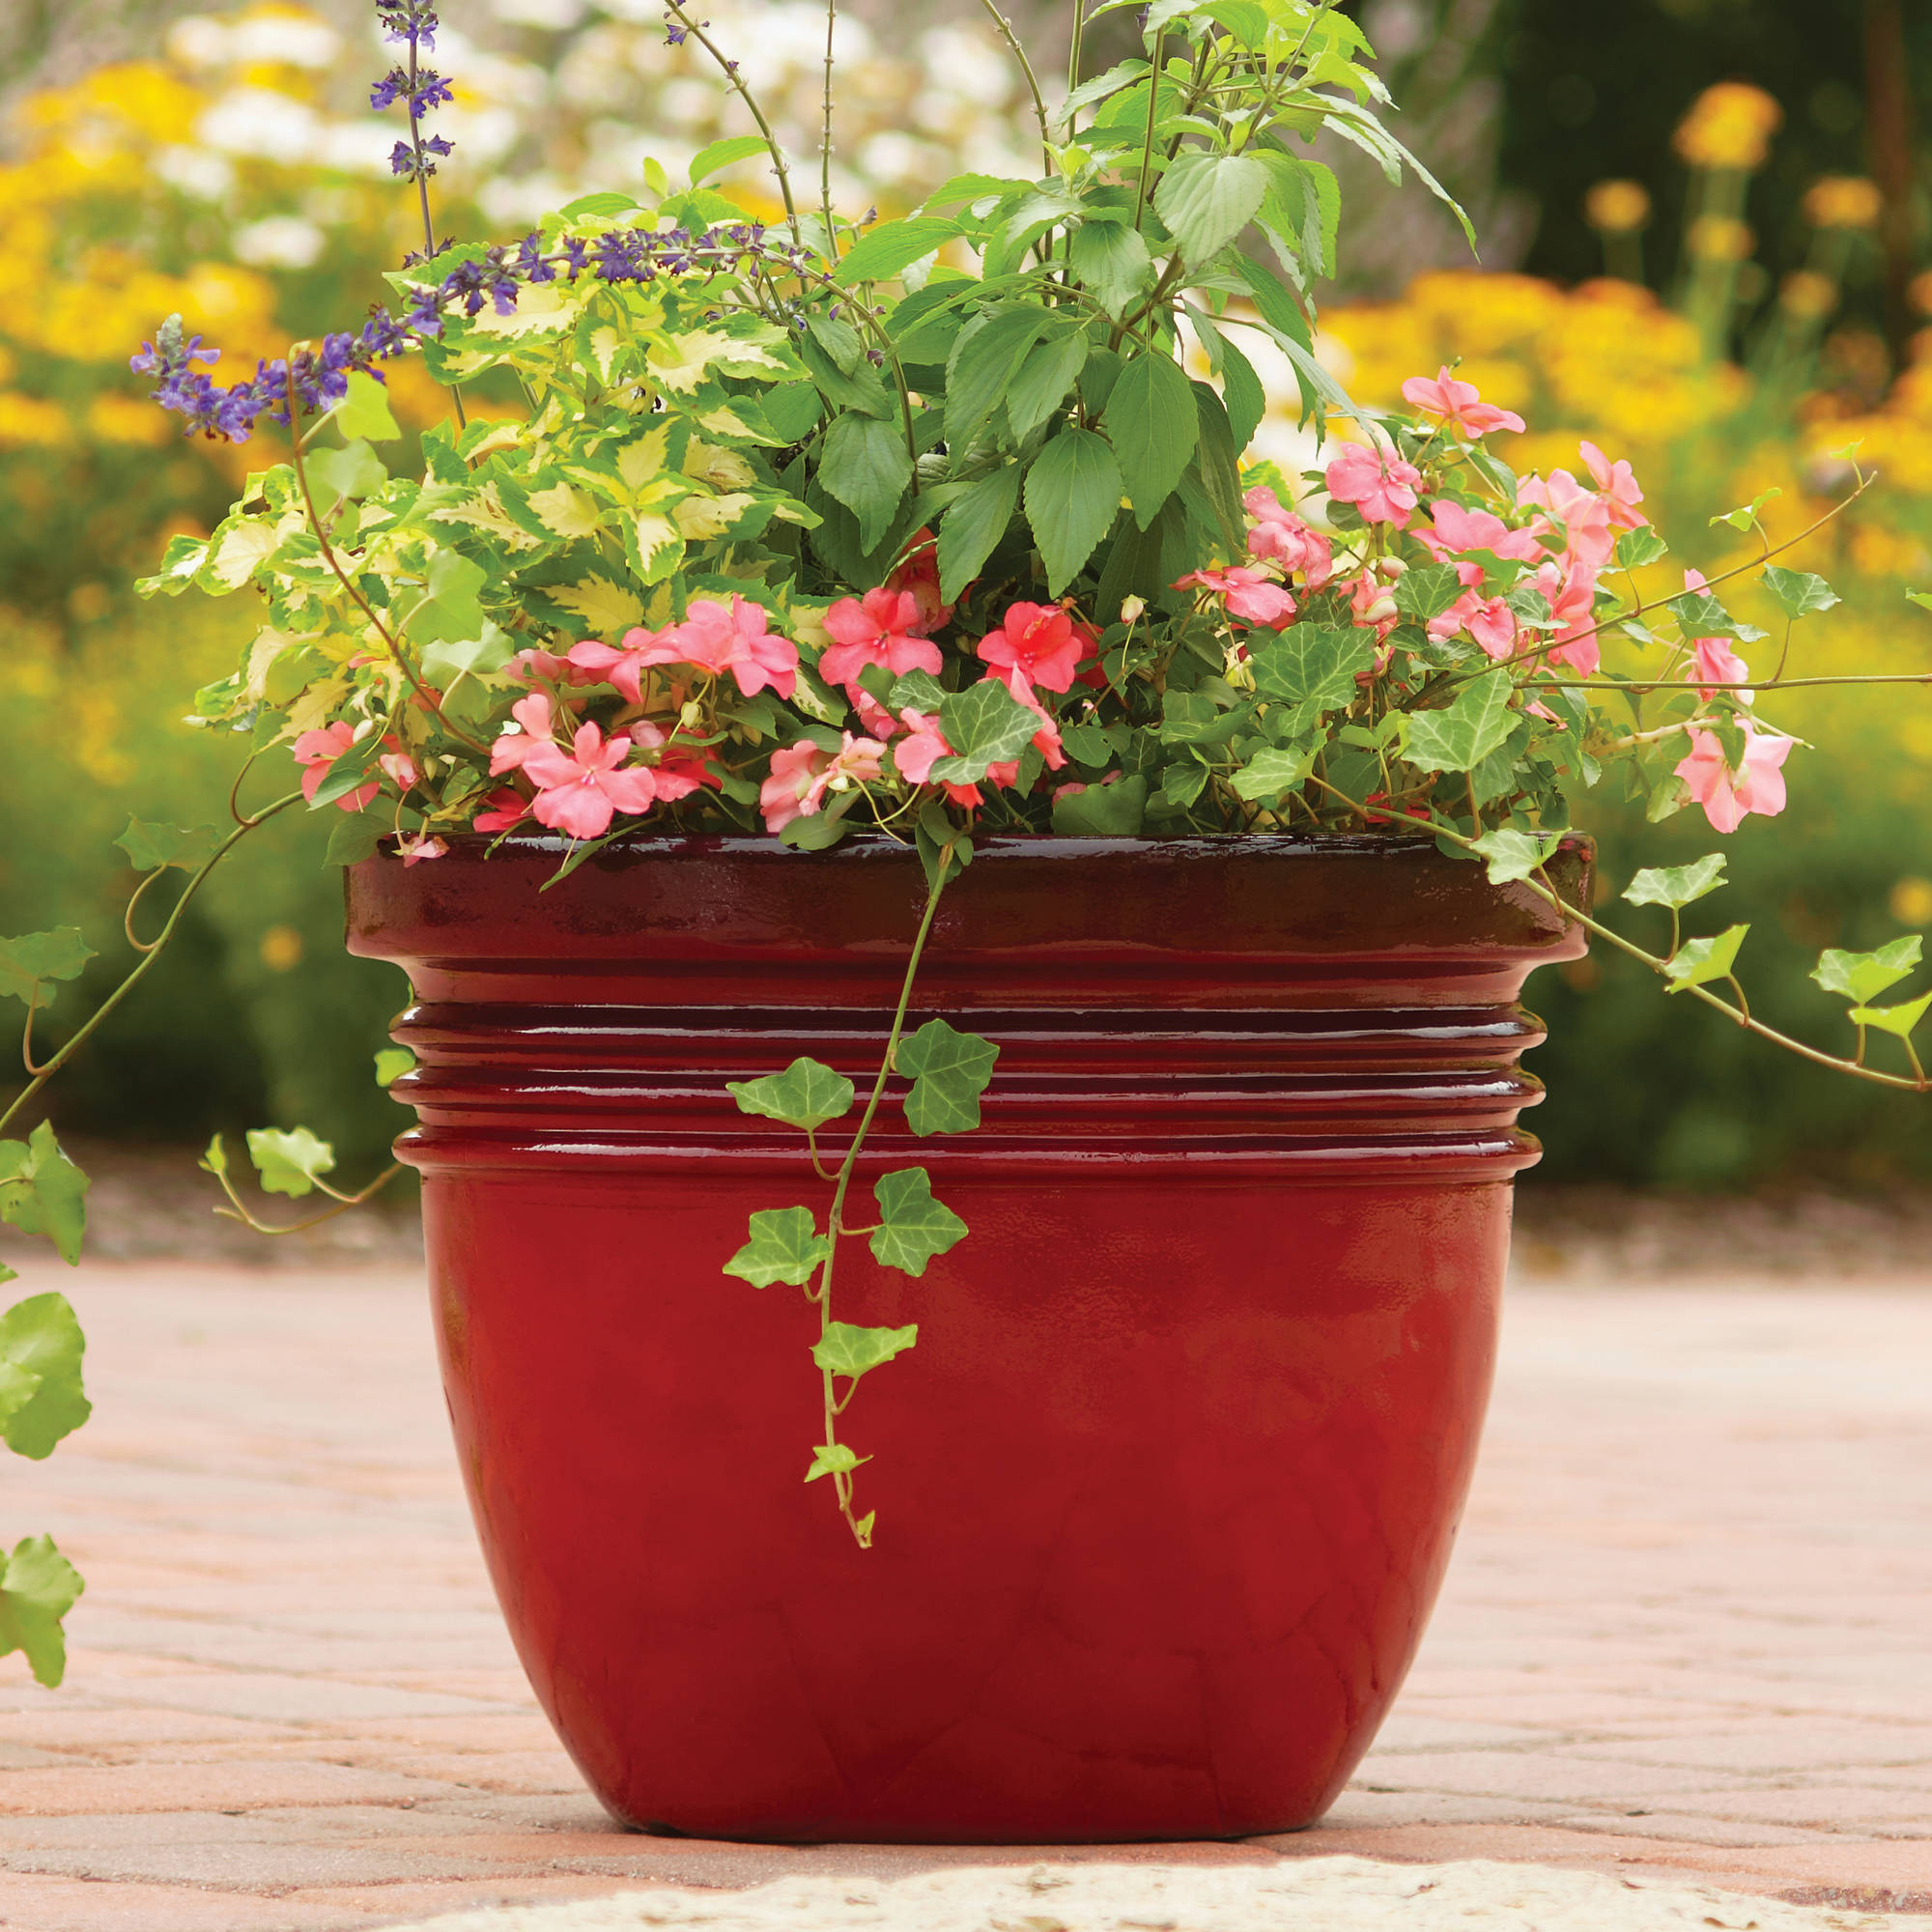 pots jysk planter zoom planters flower glazze pot garden and outdoor canada